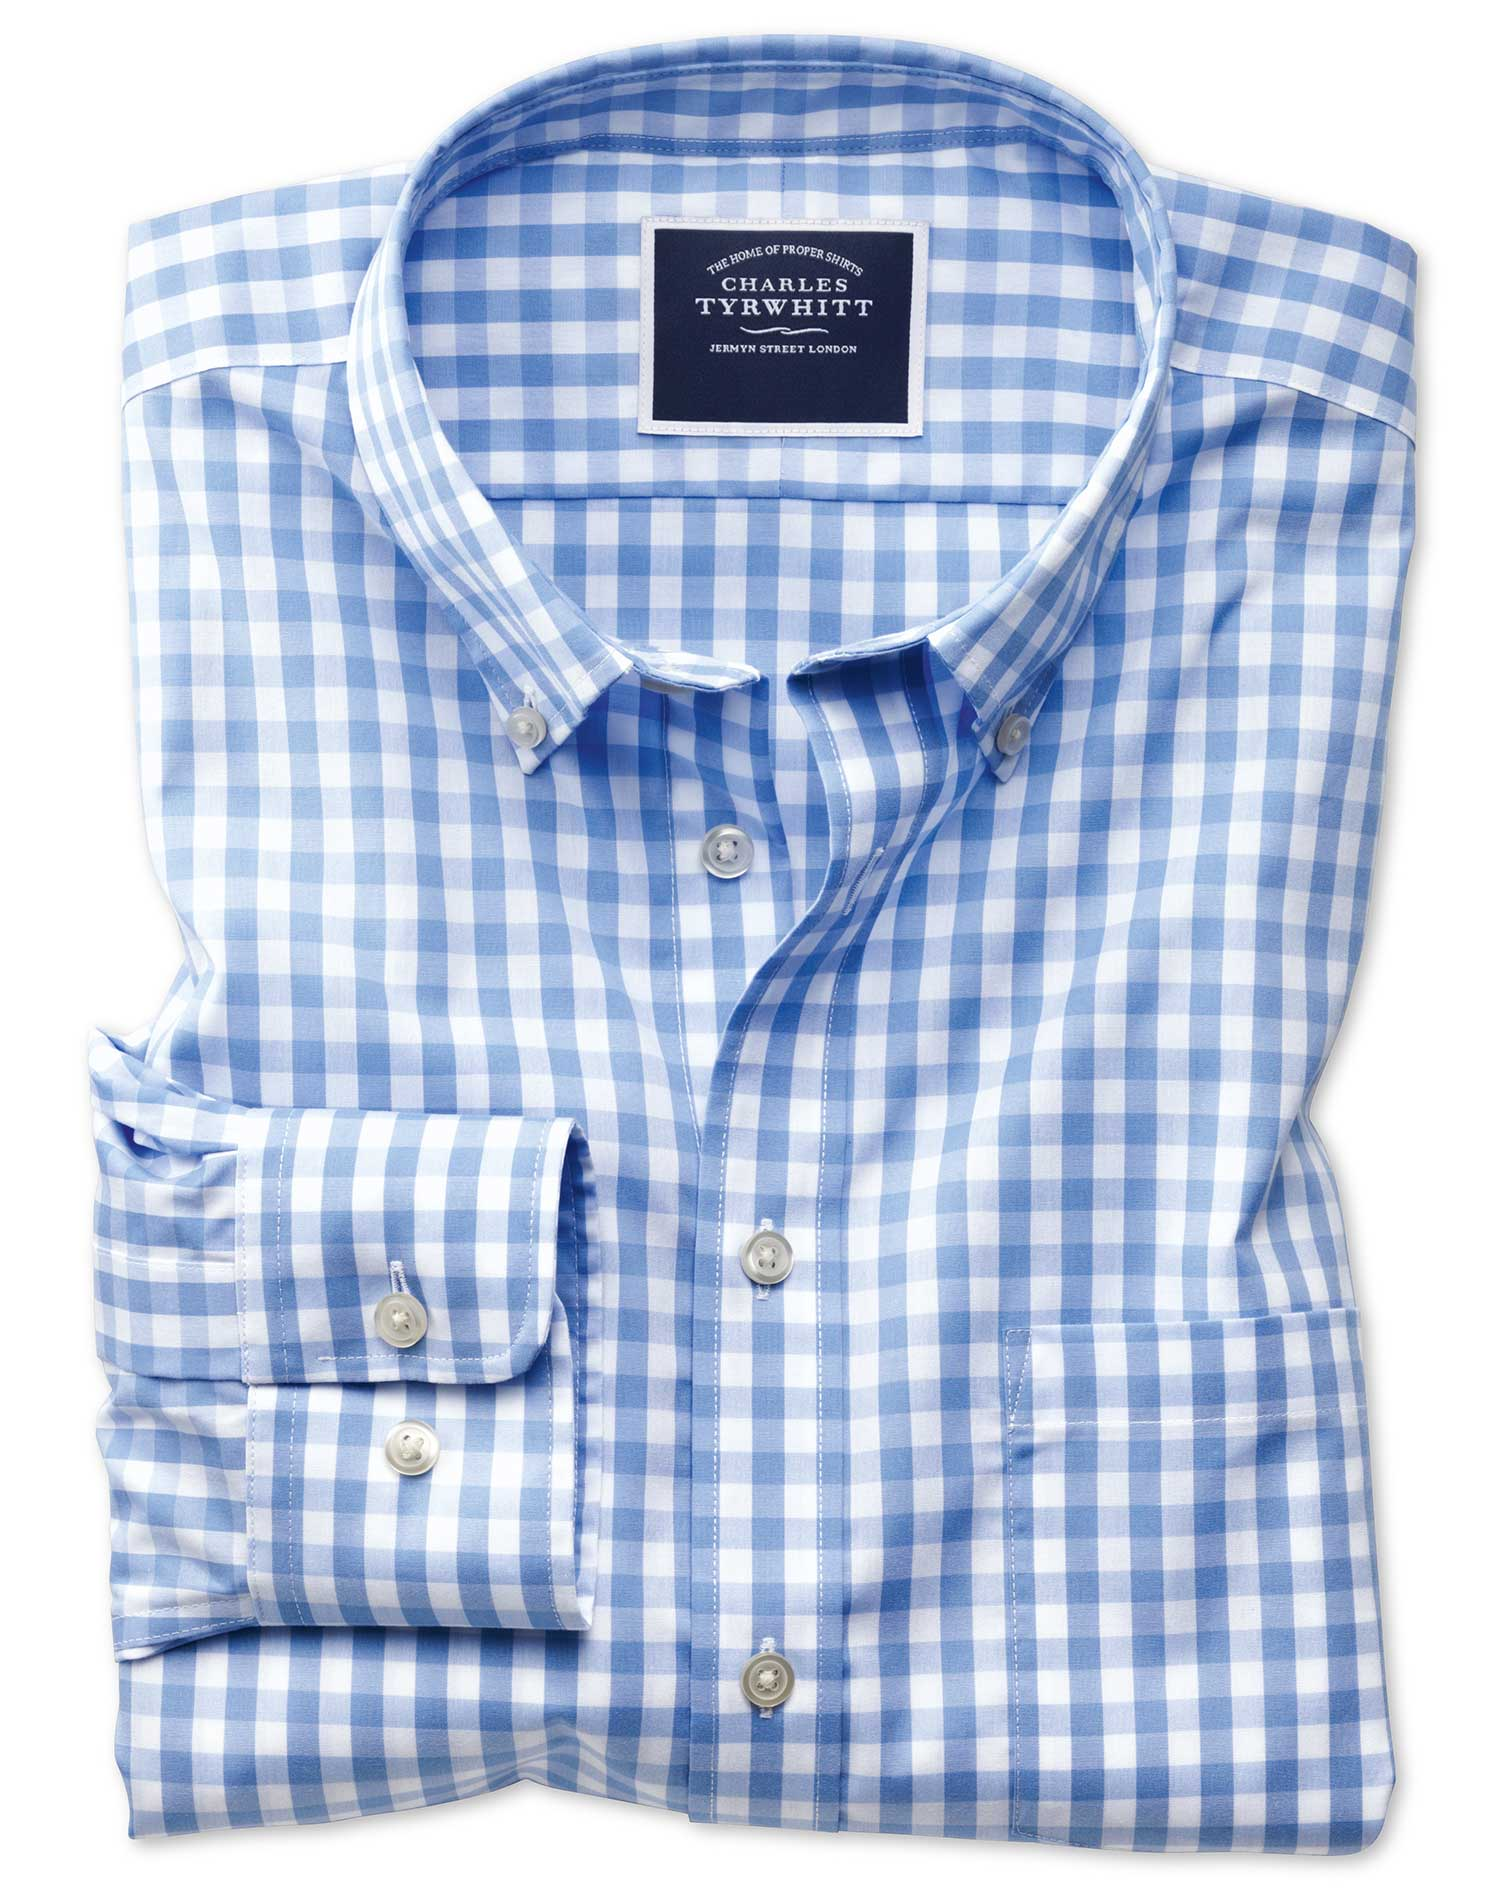 Front button placket, spread collar, button-closure cuffs, allover gingham print; Chest pocket with embroidered logo, horizontal back yoke, shirttail hem, slim fit.